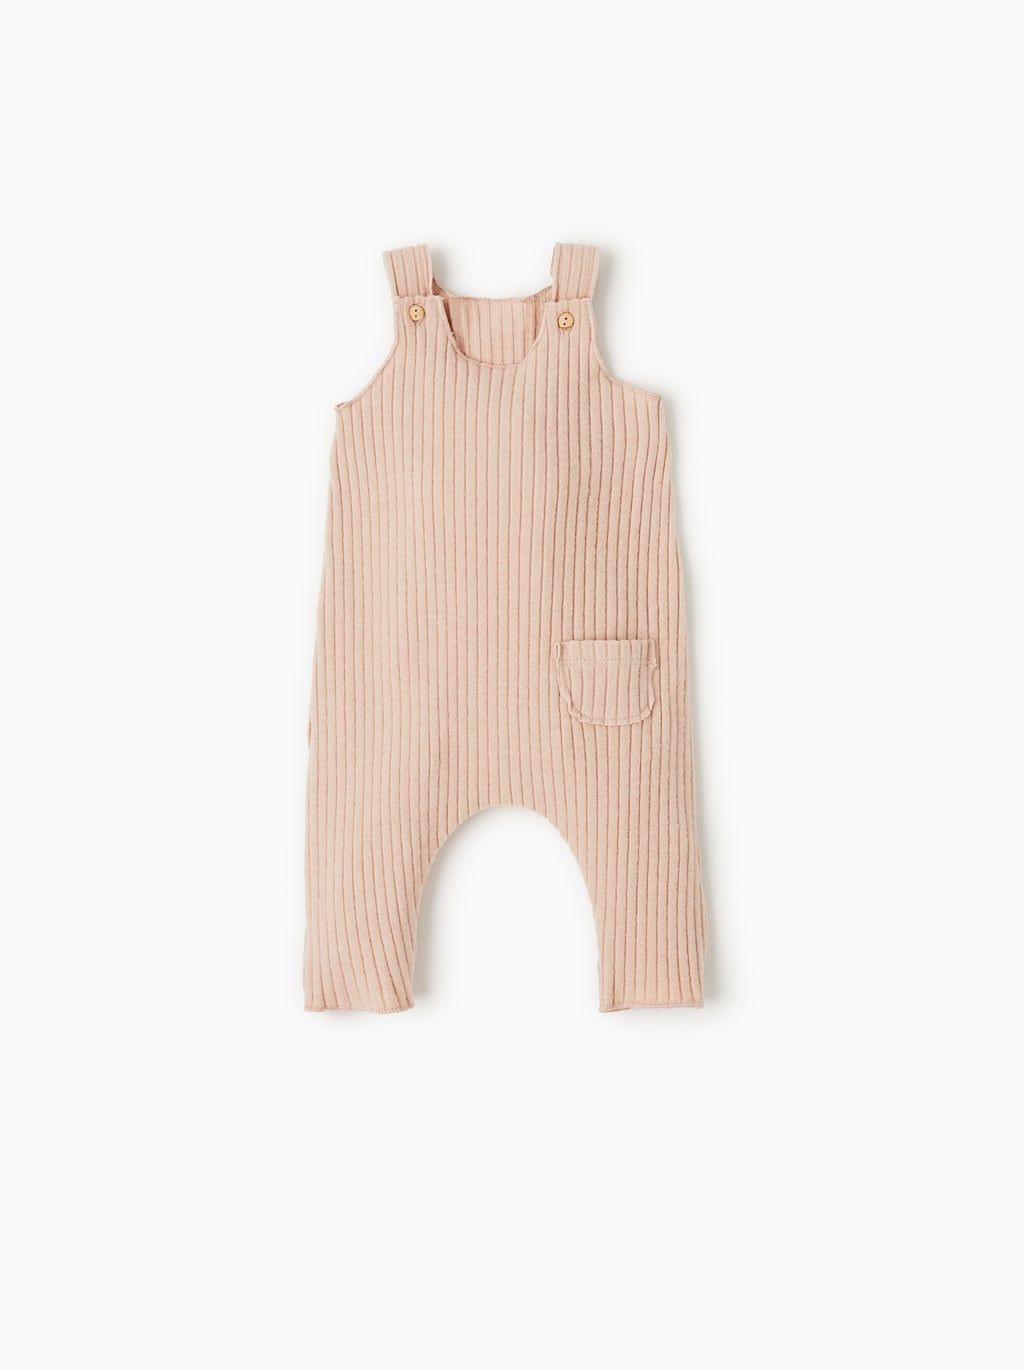 59f6ae8be818 Image 1 of RIBBED ROMPER from Zara